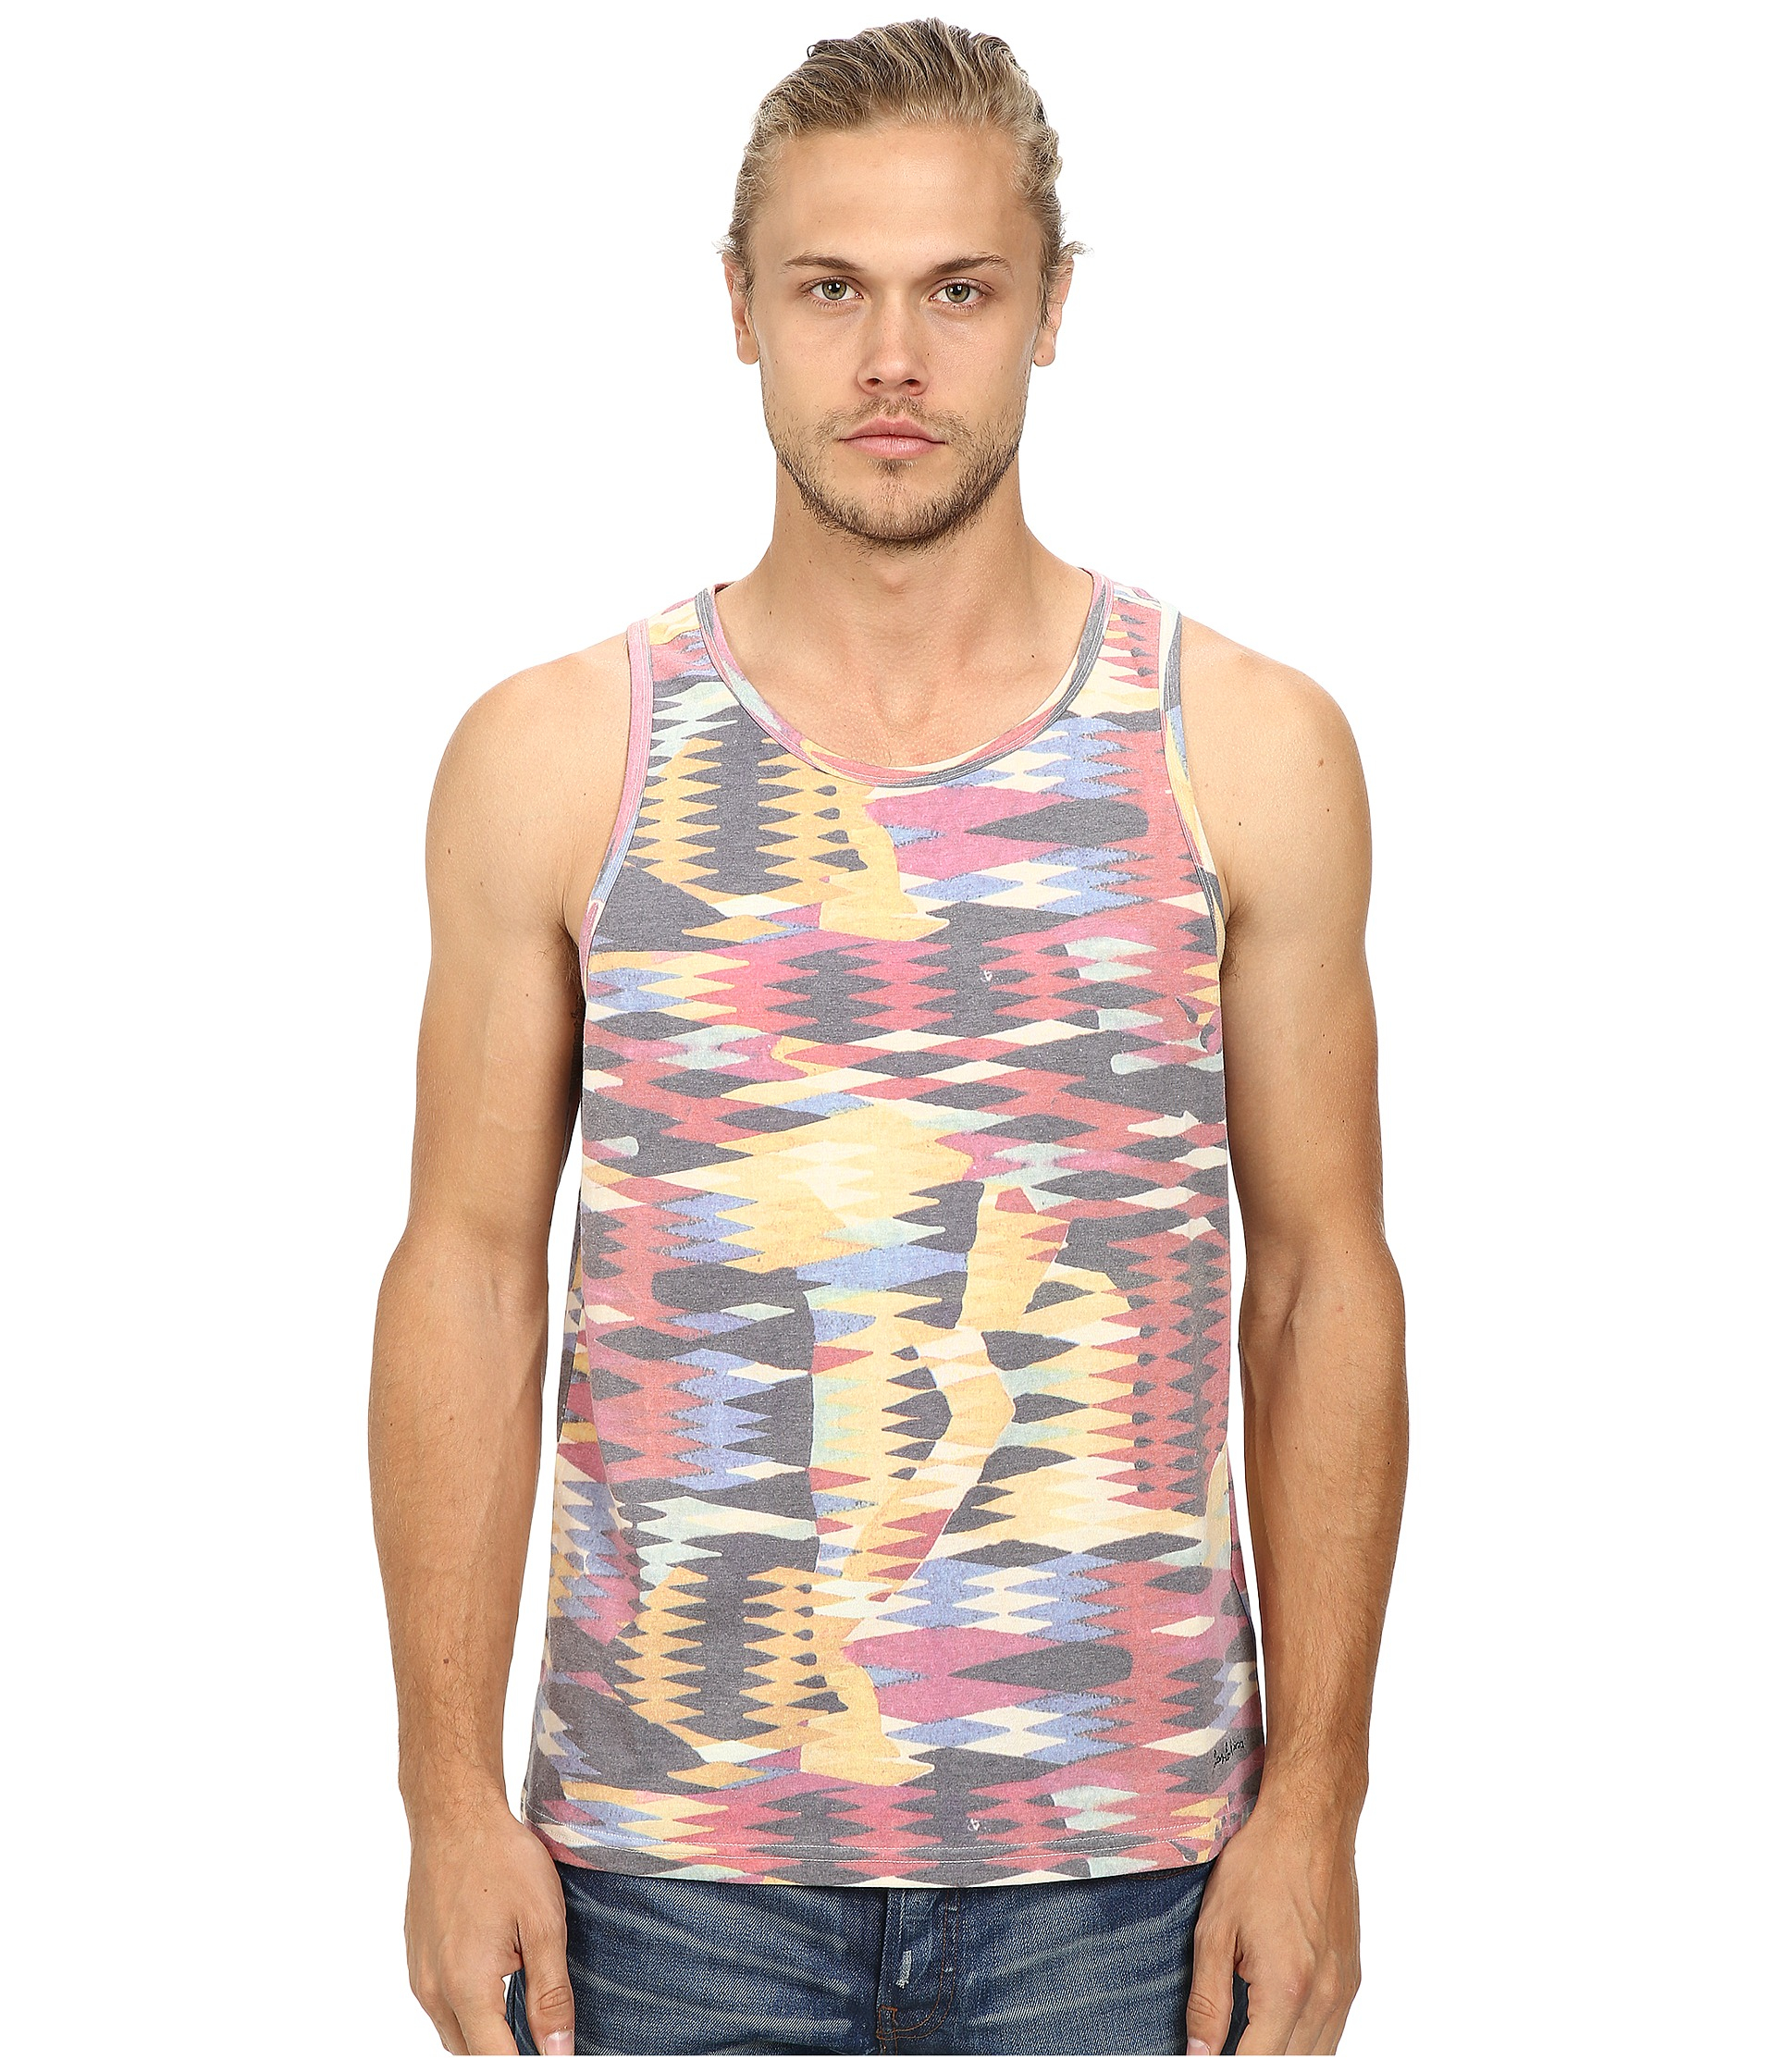 7c1669ce68b2a Lyst - Deus Ex Machina Hatchet Tank Top in Pink for Men